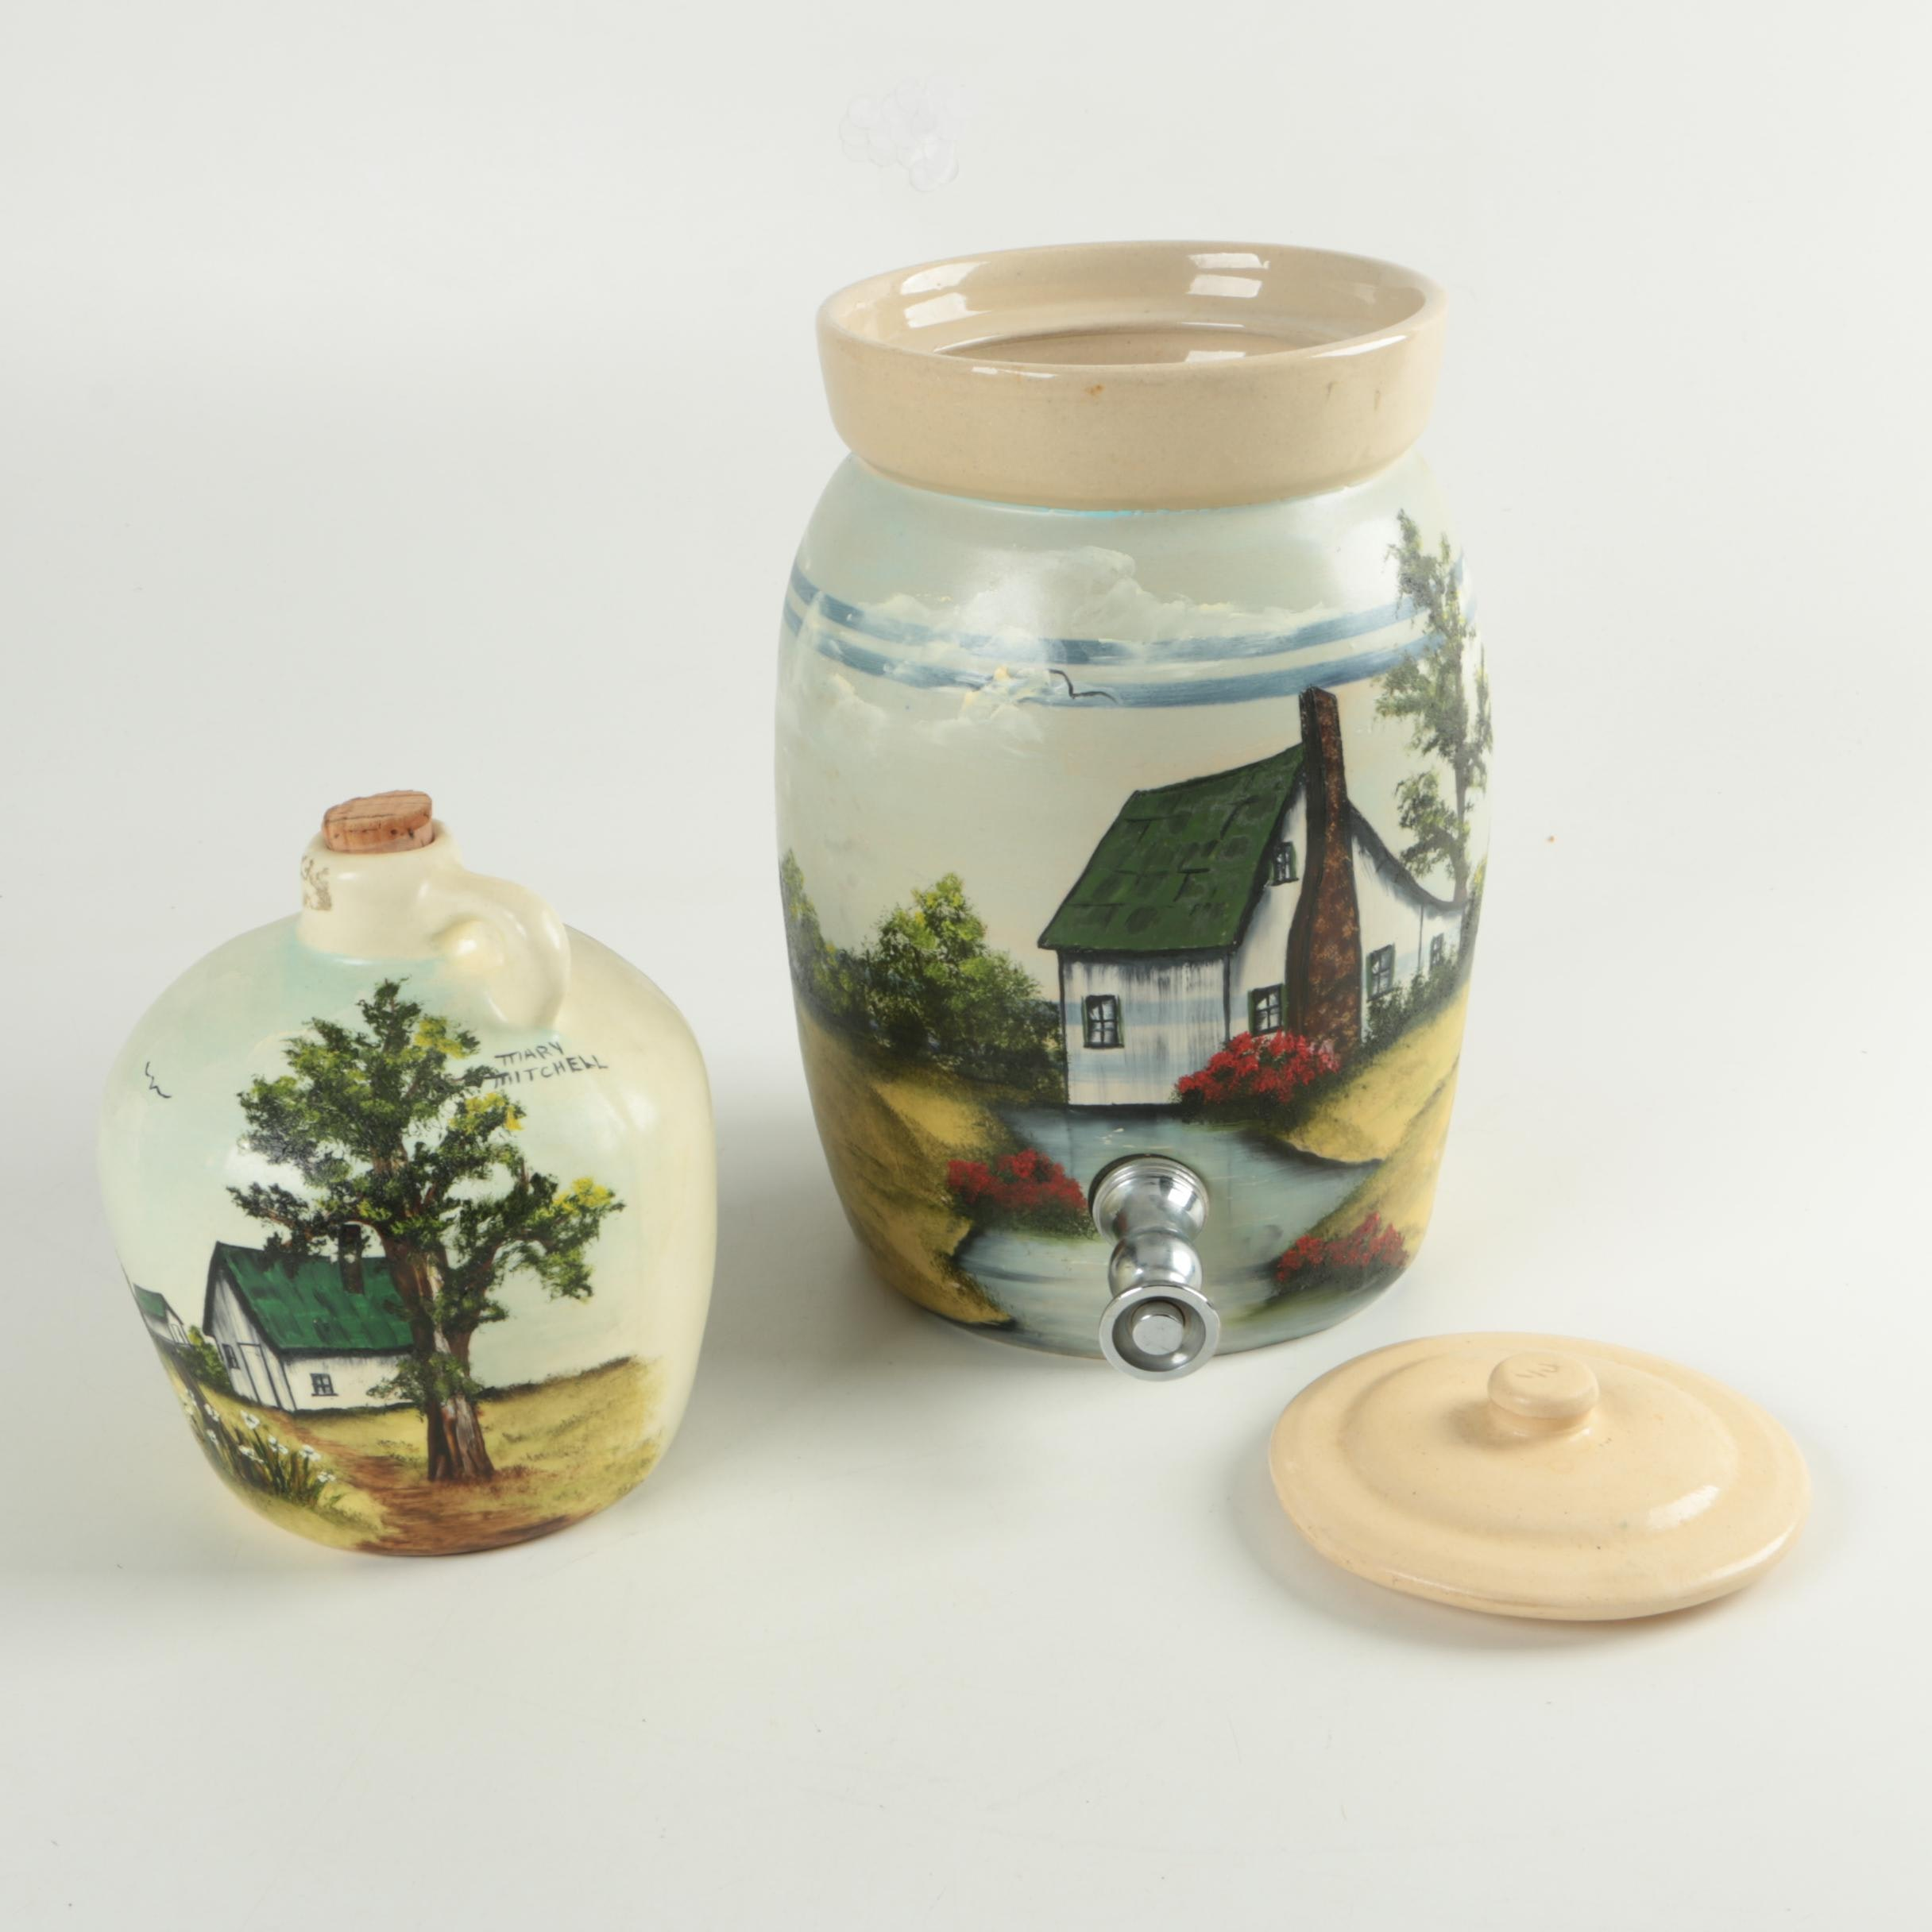 Mary Mitchell Hand Painted Stoneware Jug and Drink Dispenser